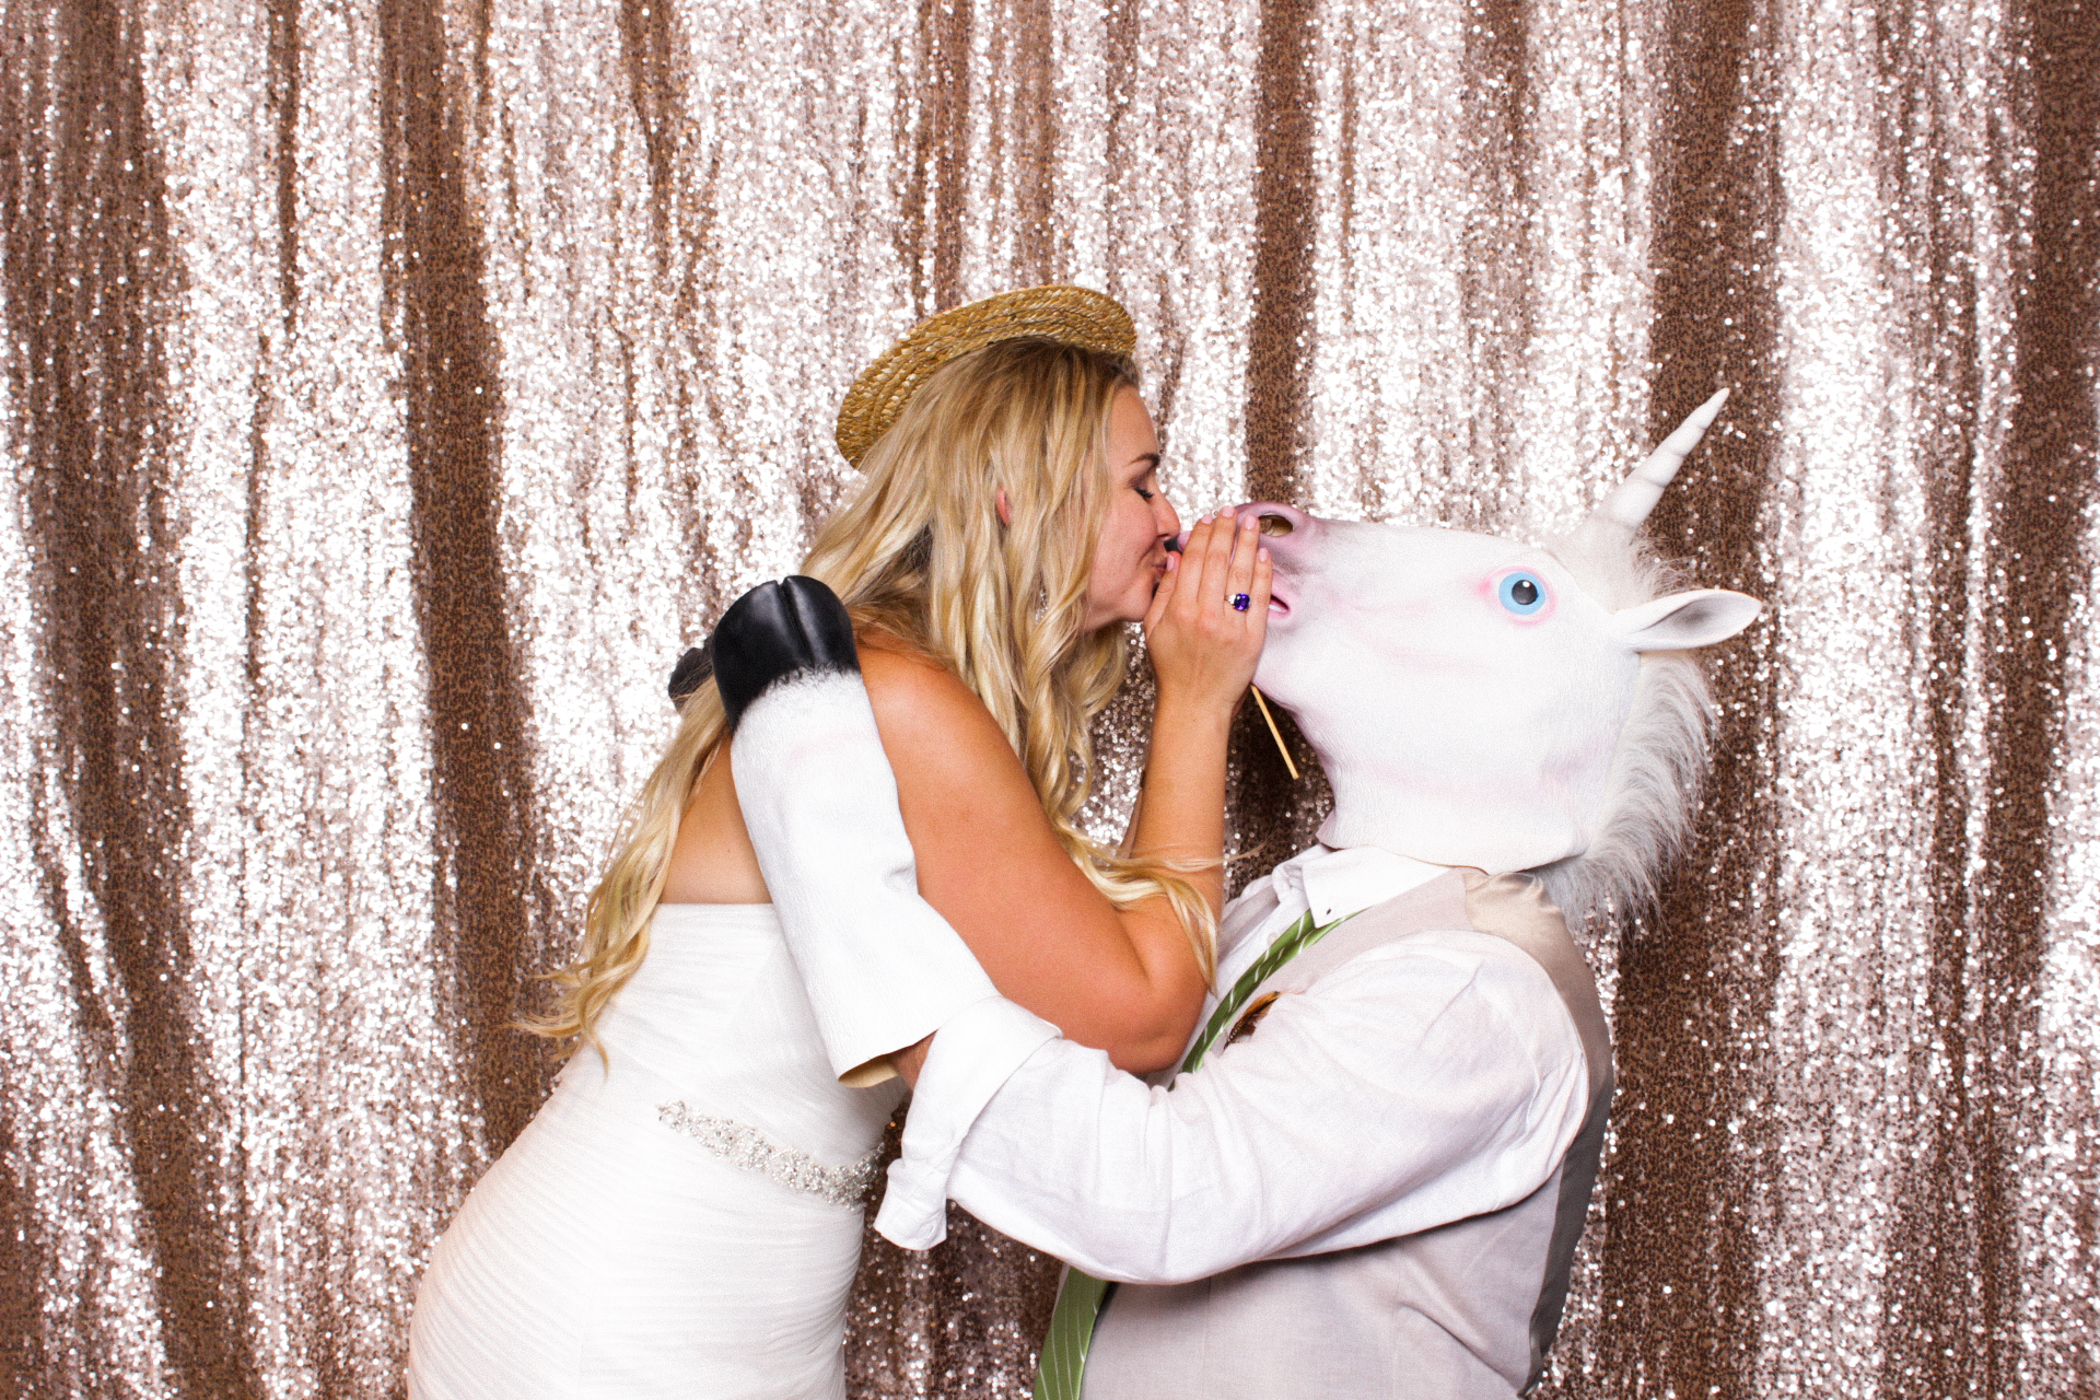 The_Reverie_Booth-Boca_Raton_Photobooth-Wedding_Photobooth_Florida-Florida_Photobooth_Rental-Wedding_Photobooth-080.jpg